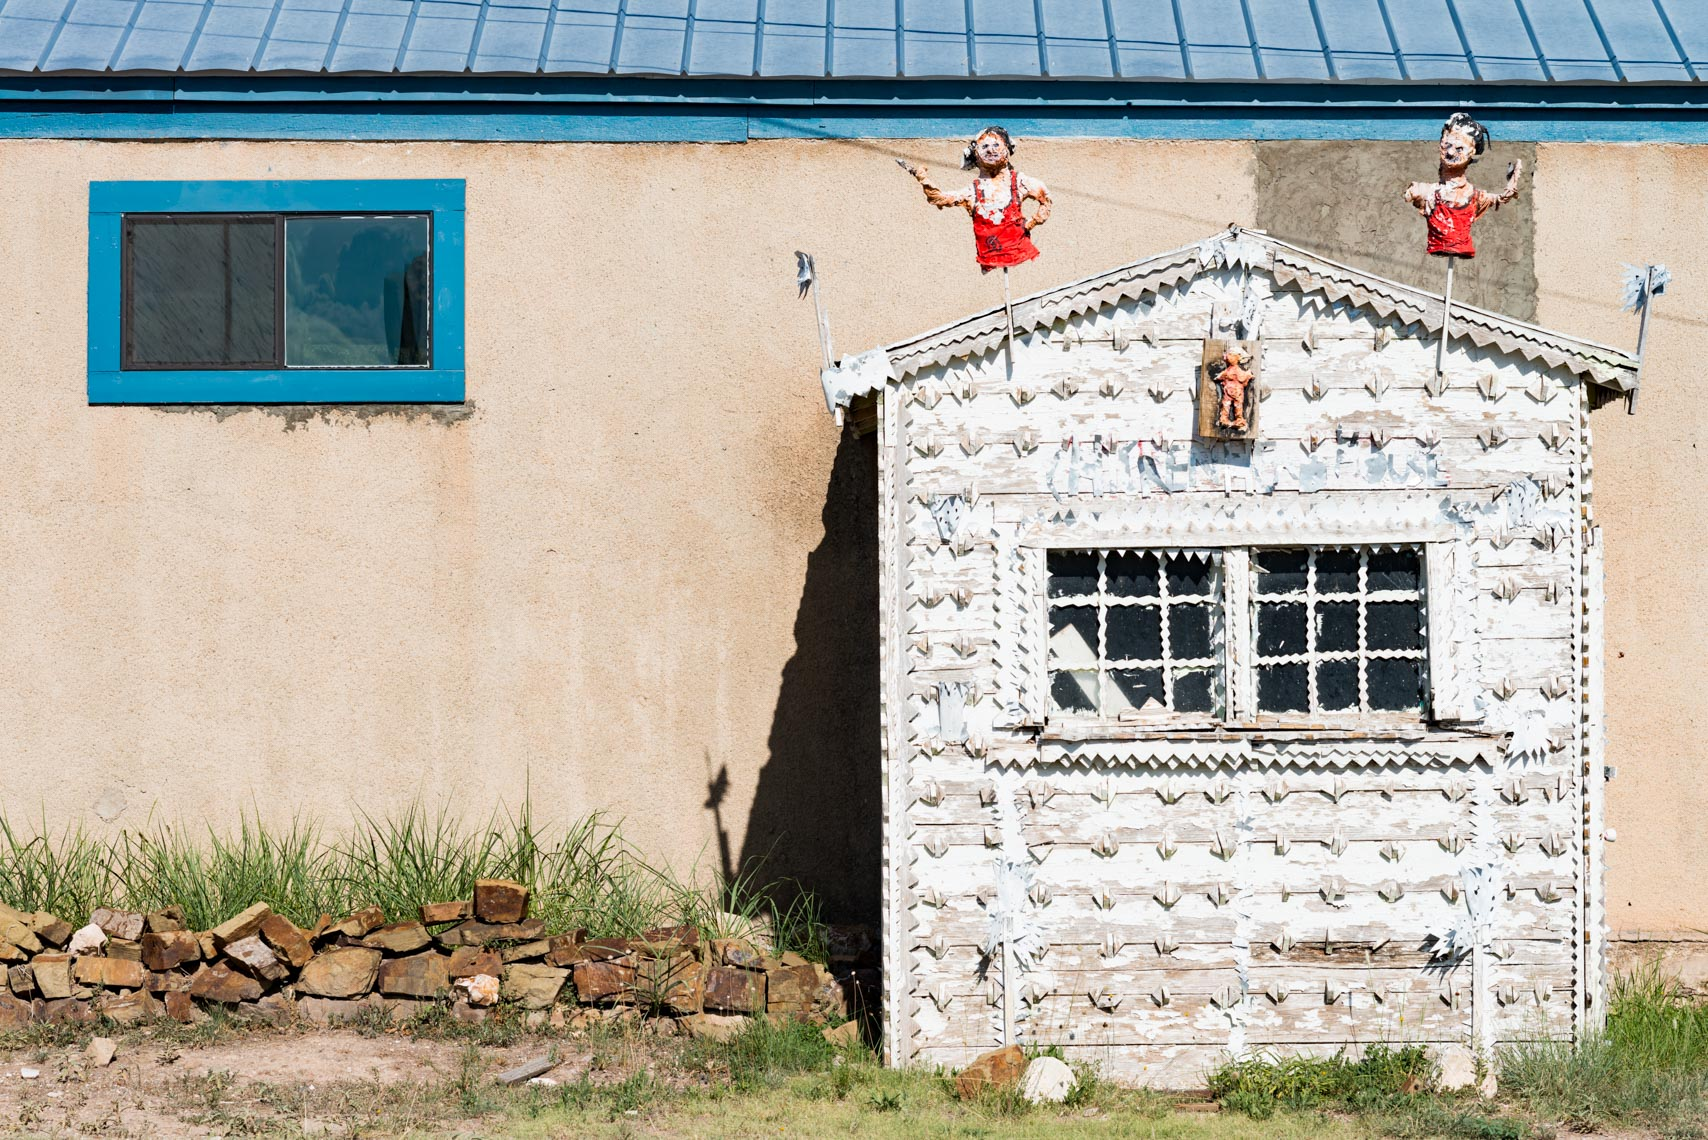 Punch and Judy |  Marathon, Texas